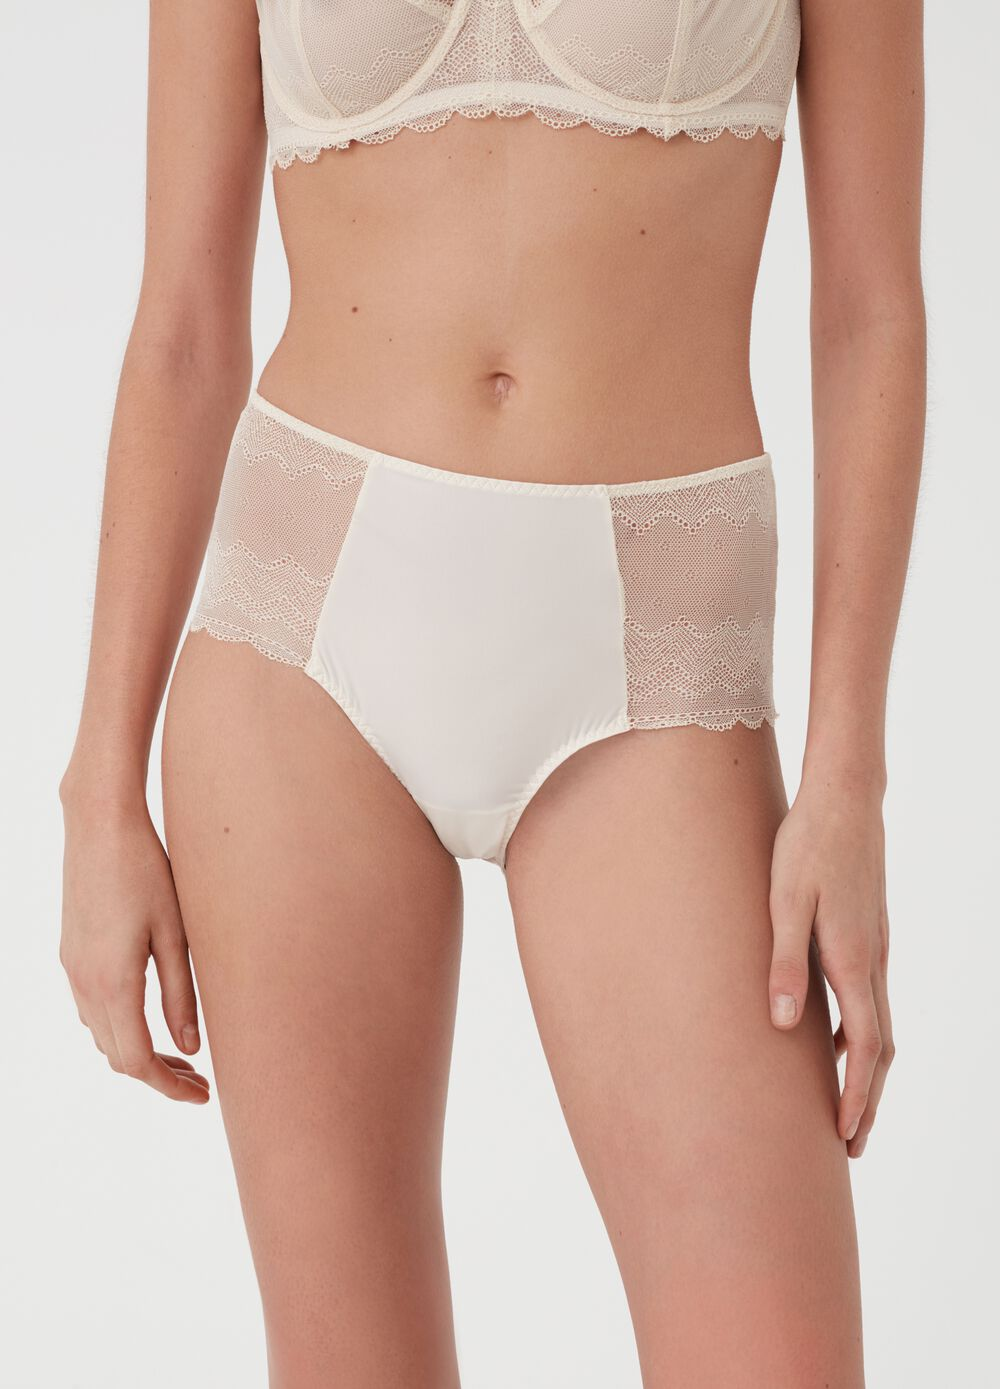 Seductive French knickers with high waist and invisible under clothing